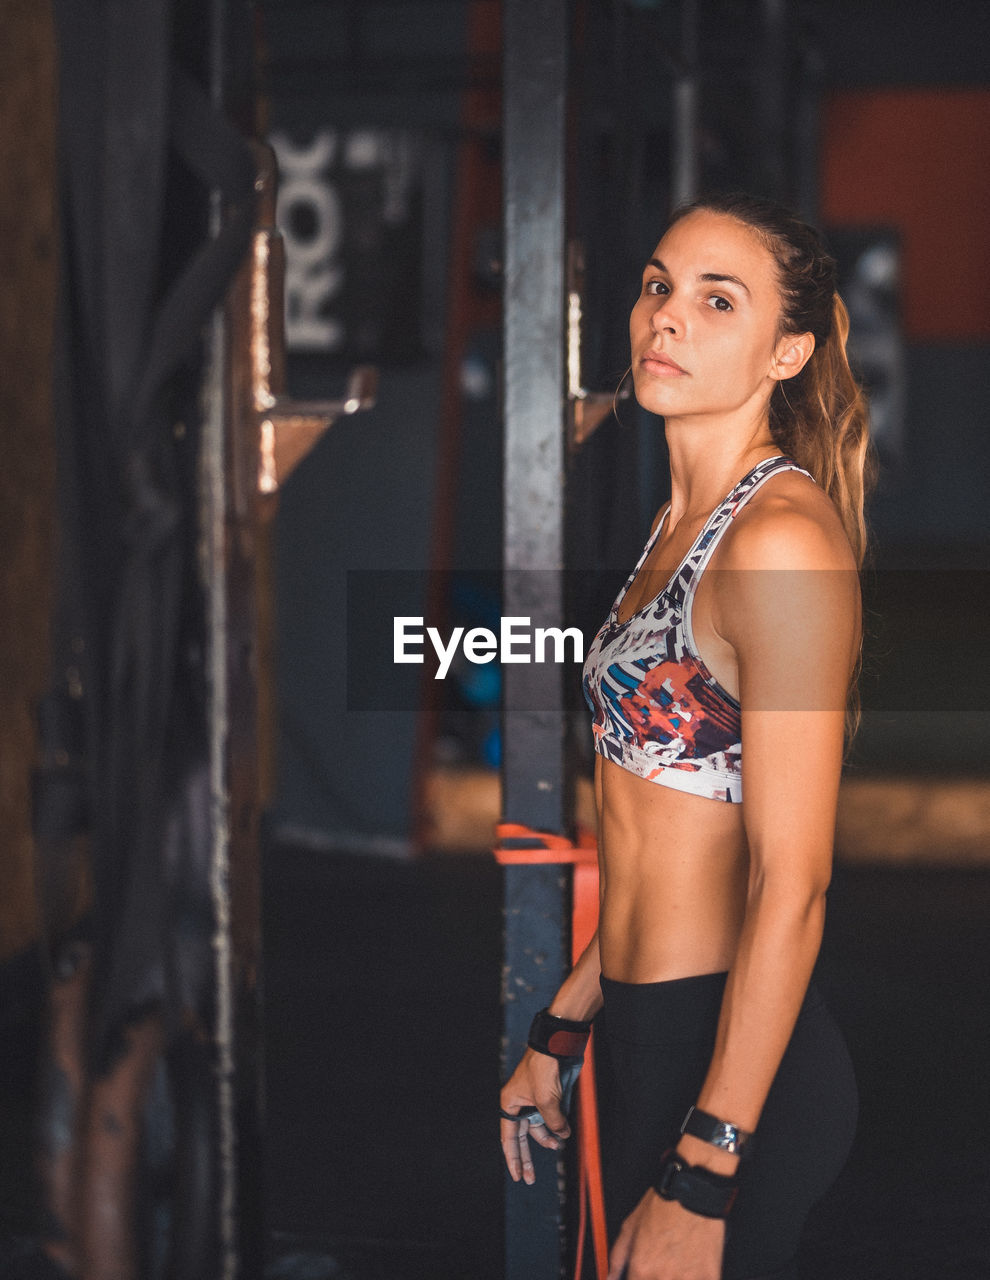 Portrait Of Young Woman Exercising In Gym